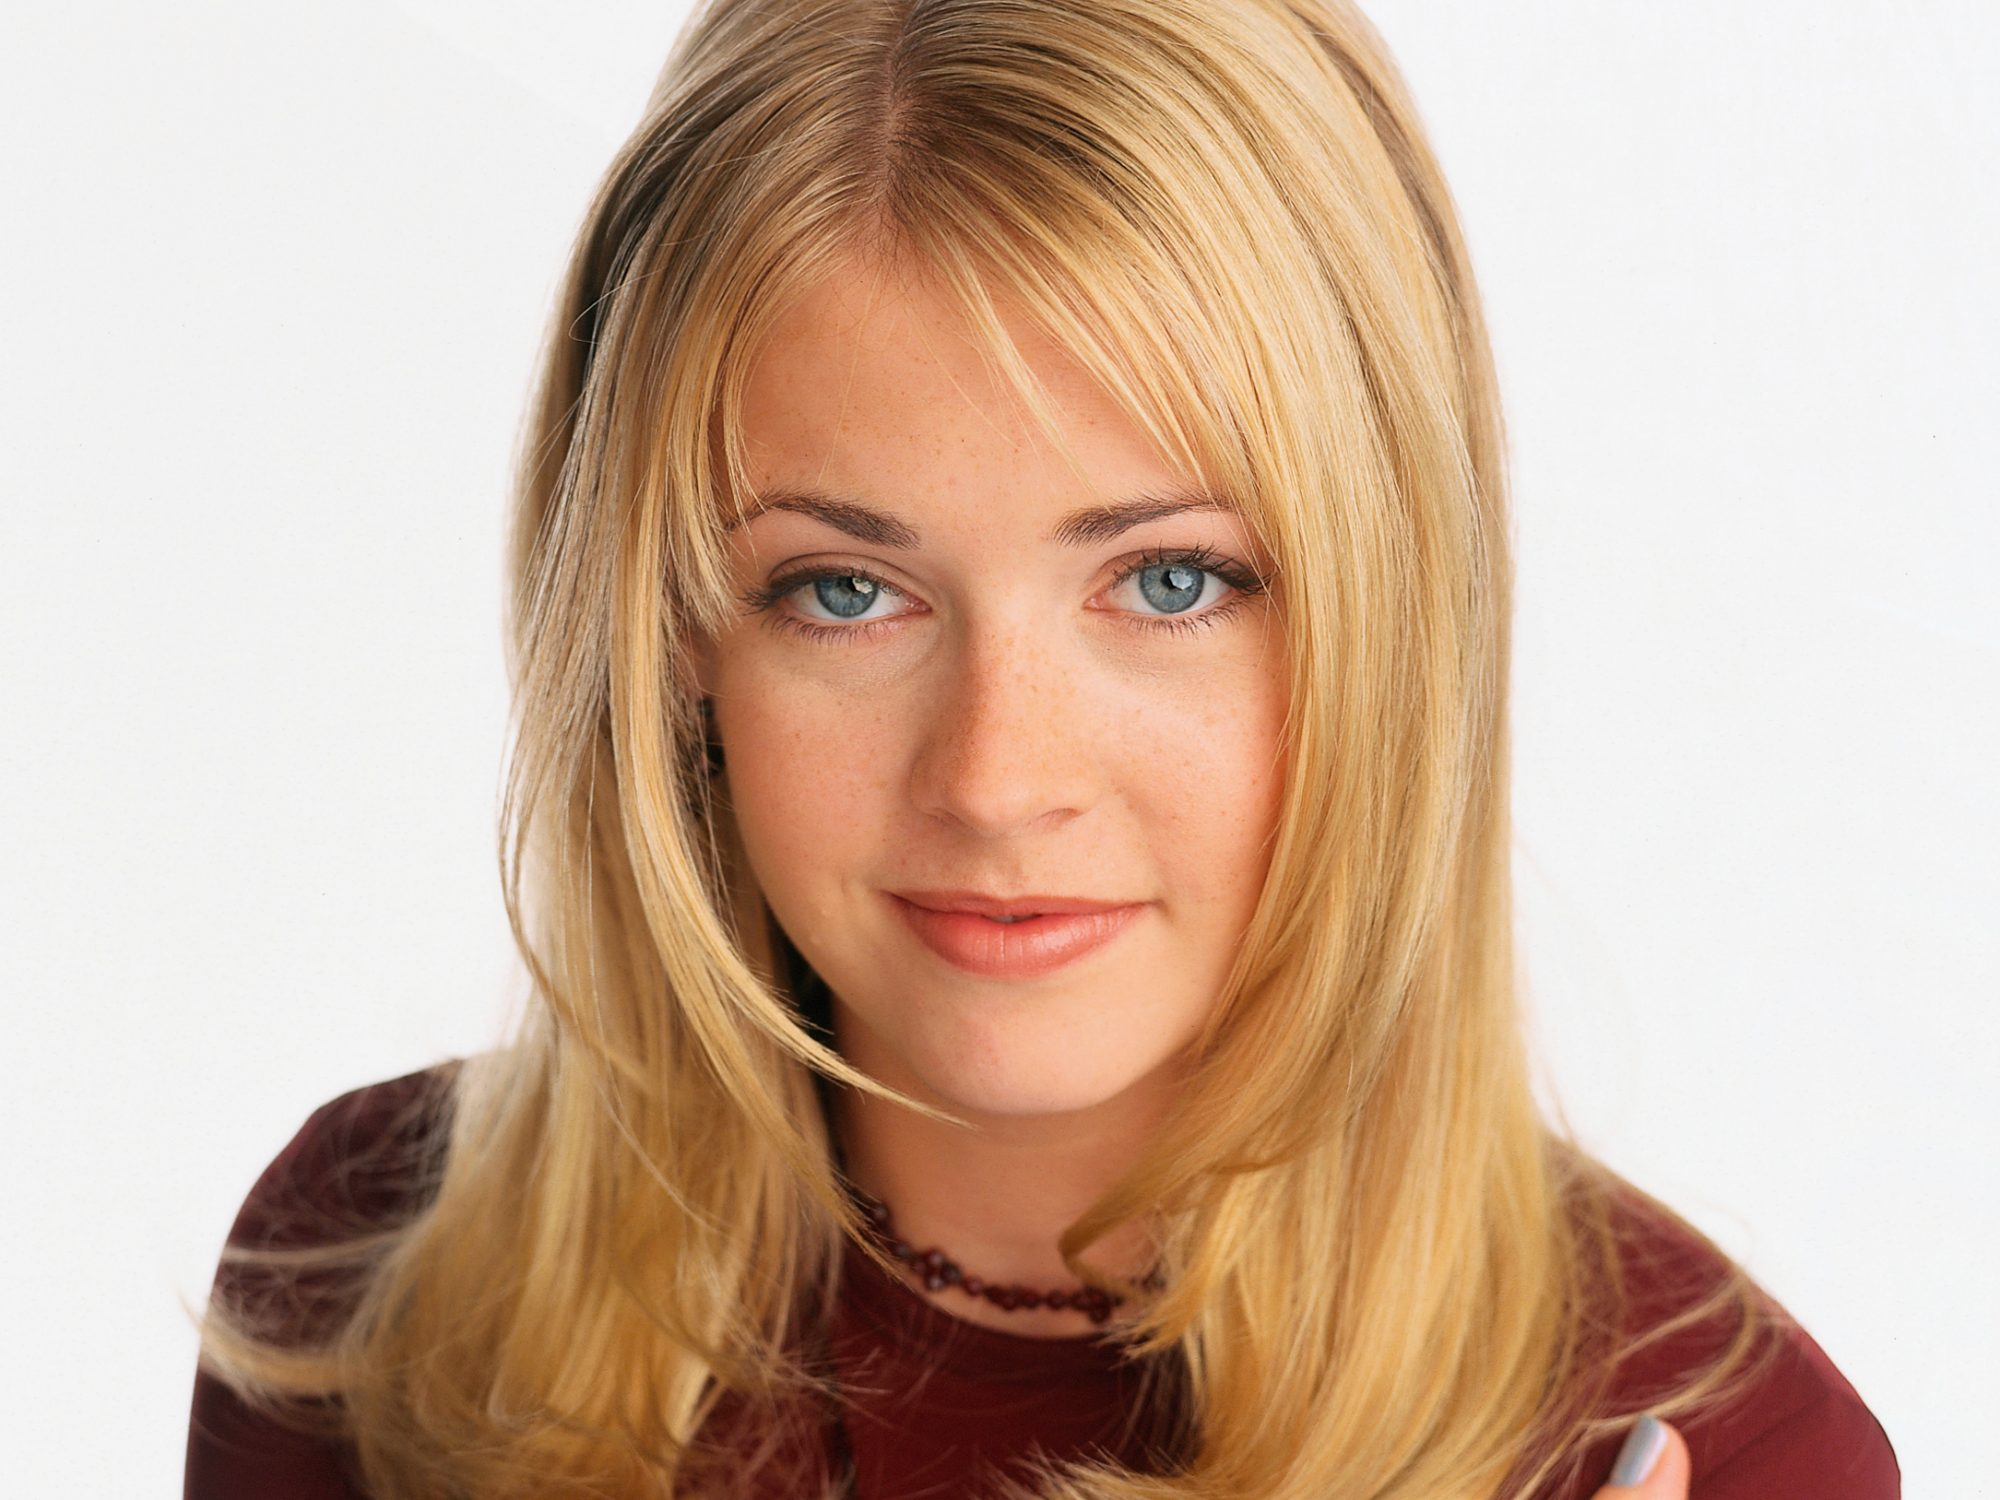 Sabrina from Sabrina the Teenage Witch